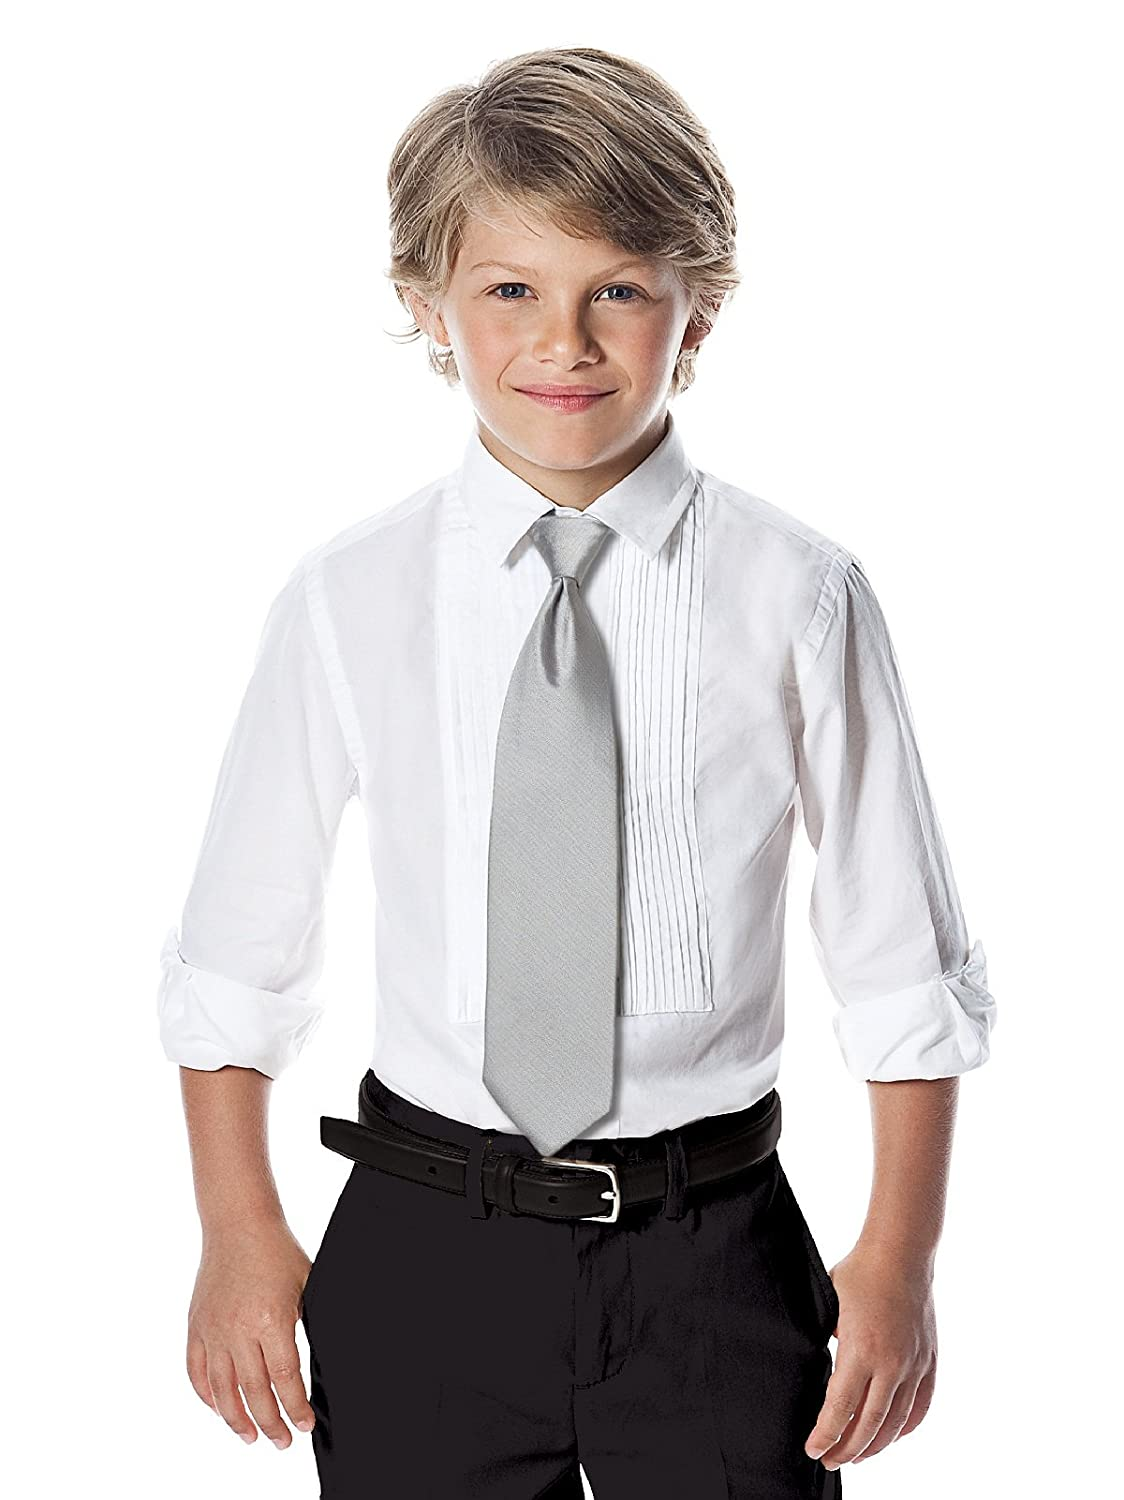 Boys Paragon Jacquard Slider Tie by After Six from Dessy Appletini